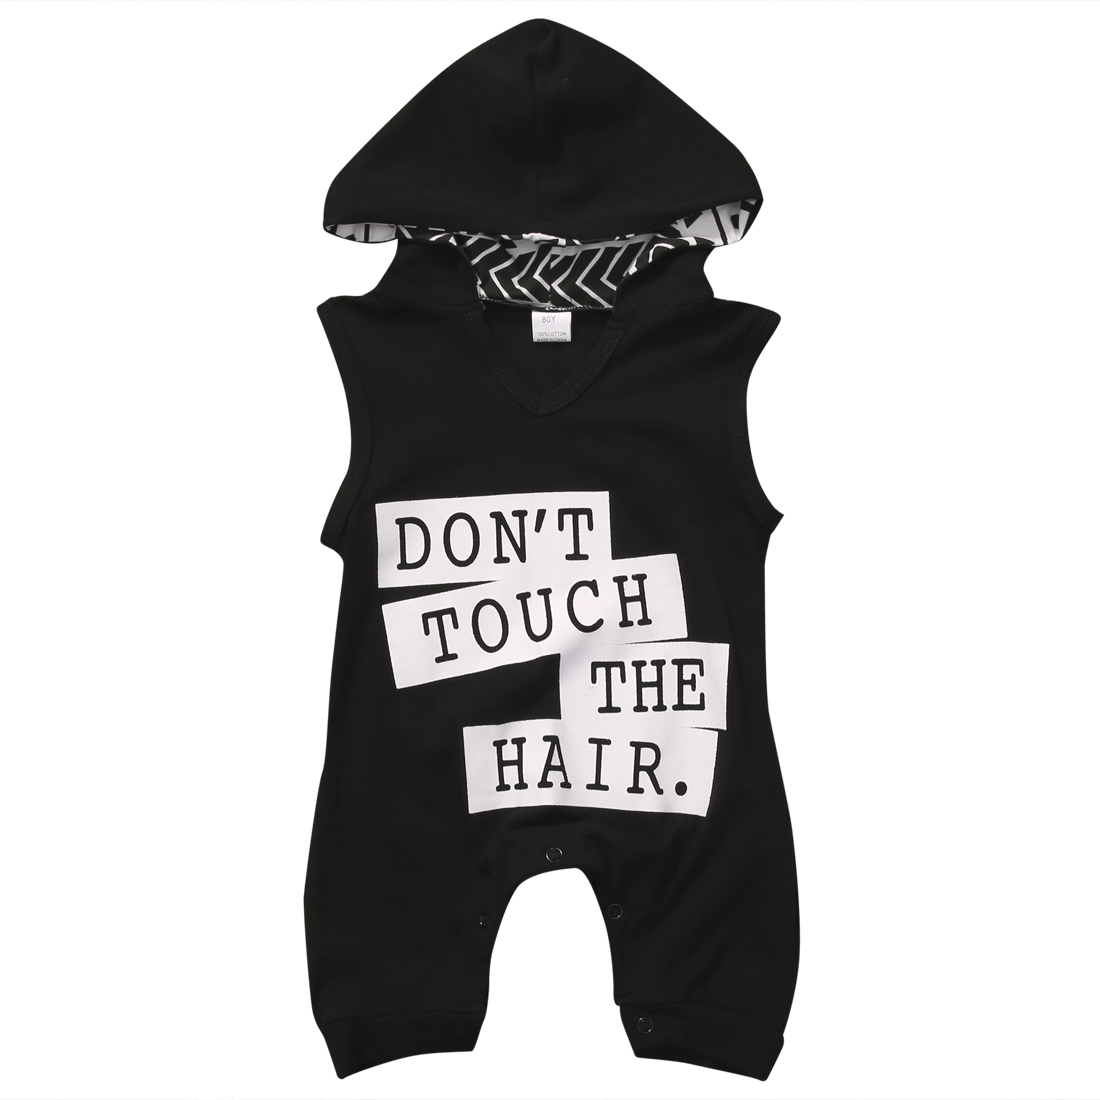 Cotton Newborn Infant Baby Boys Girls Sleeveless Harem Hooded Rompers Black Dont Touch Letters Romper Jumpsuit Clothes Outfits ...